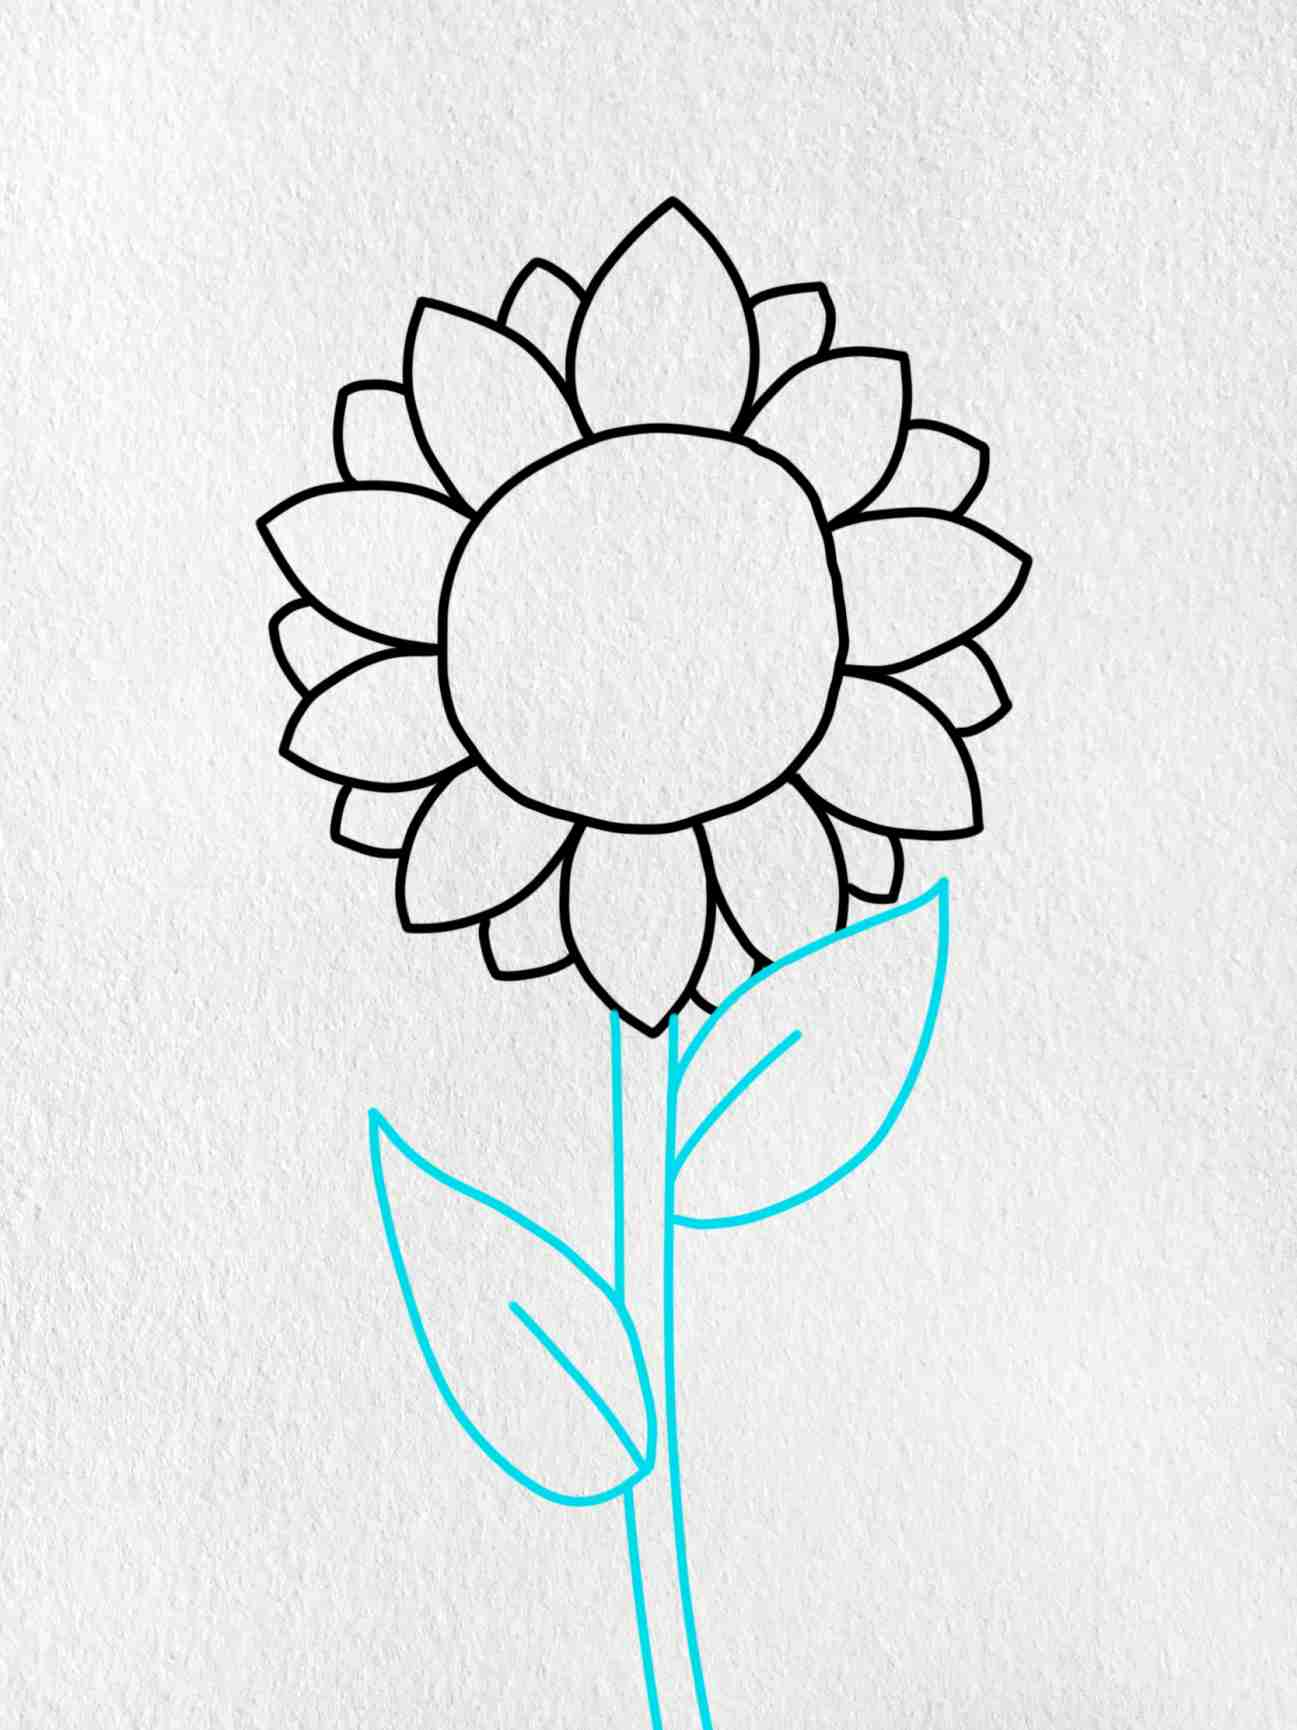 How To Draw Sunflowers: Step 3